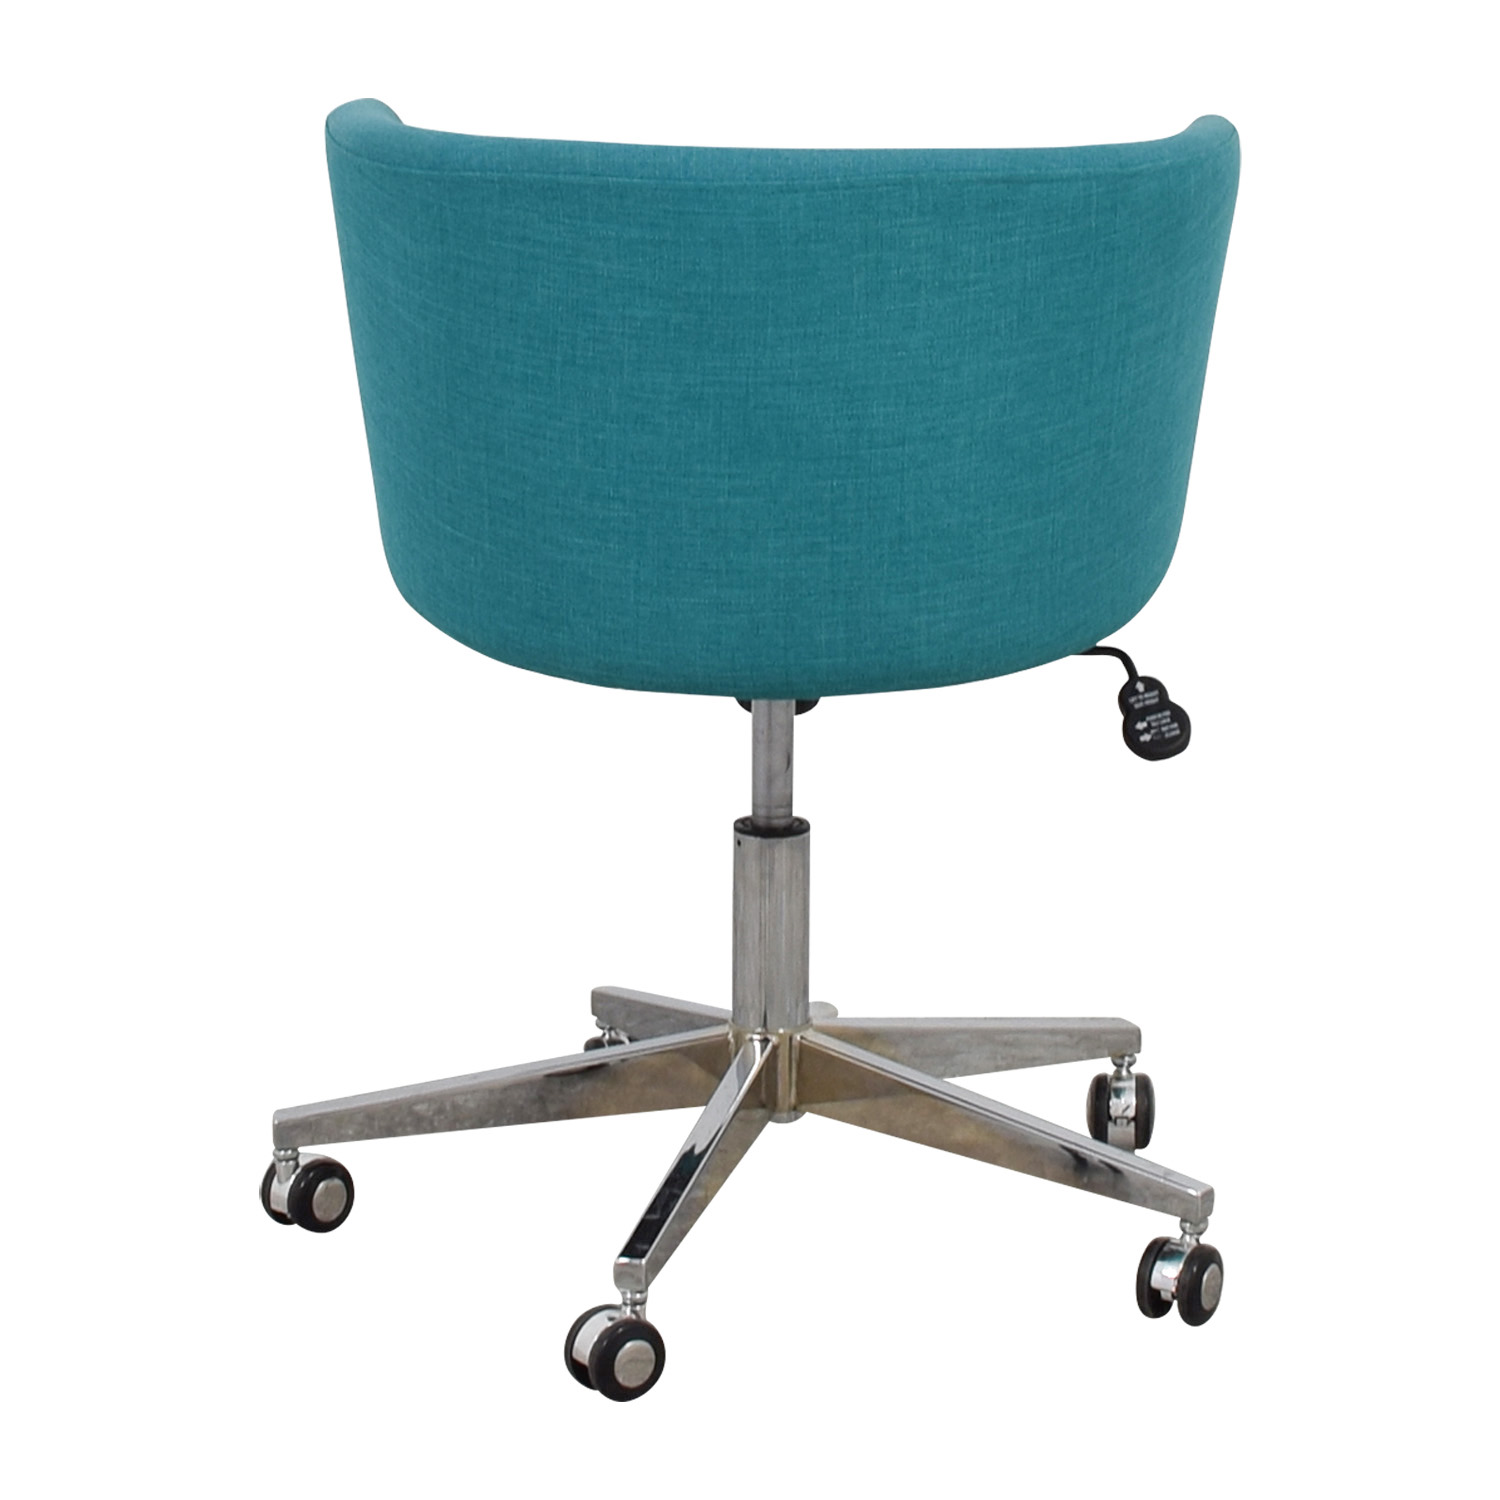 CB2 CB2 Teal Desk Chair with Castors used